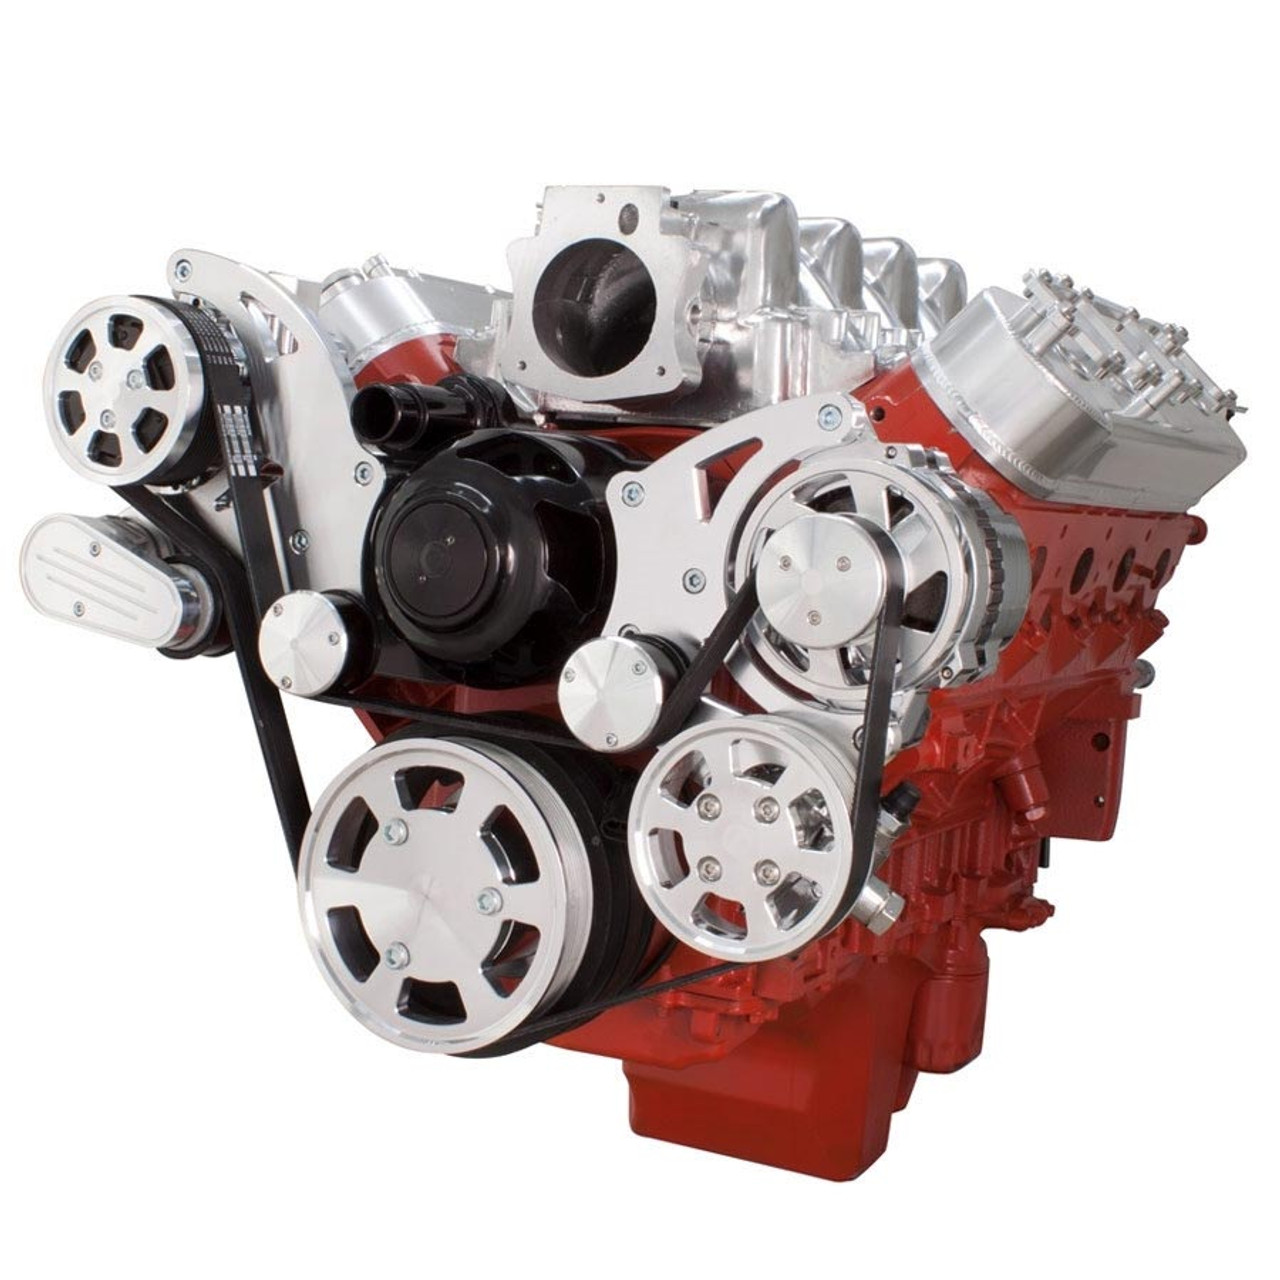 small resolution of chevy ls engine serpentine kit ac alternator power steering with electric water